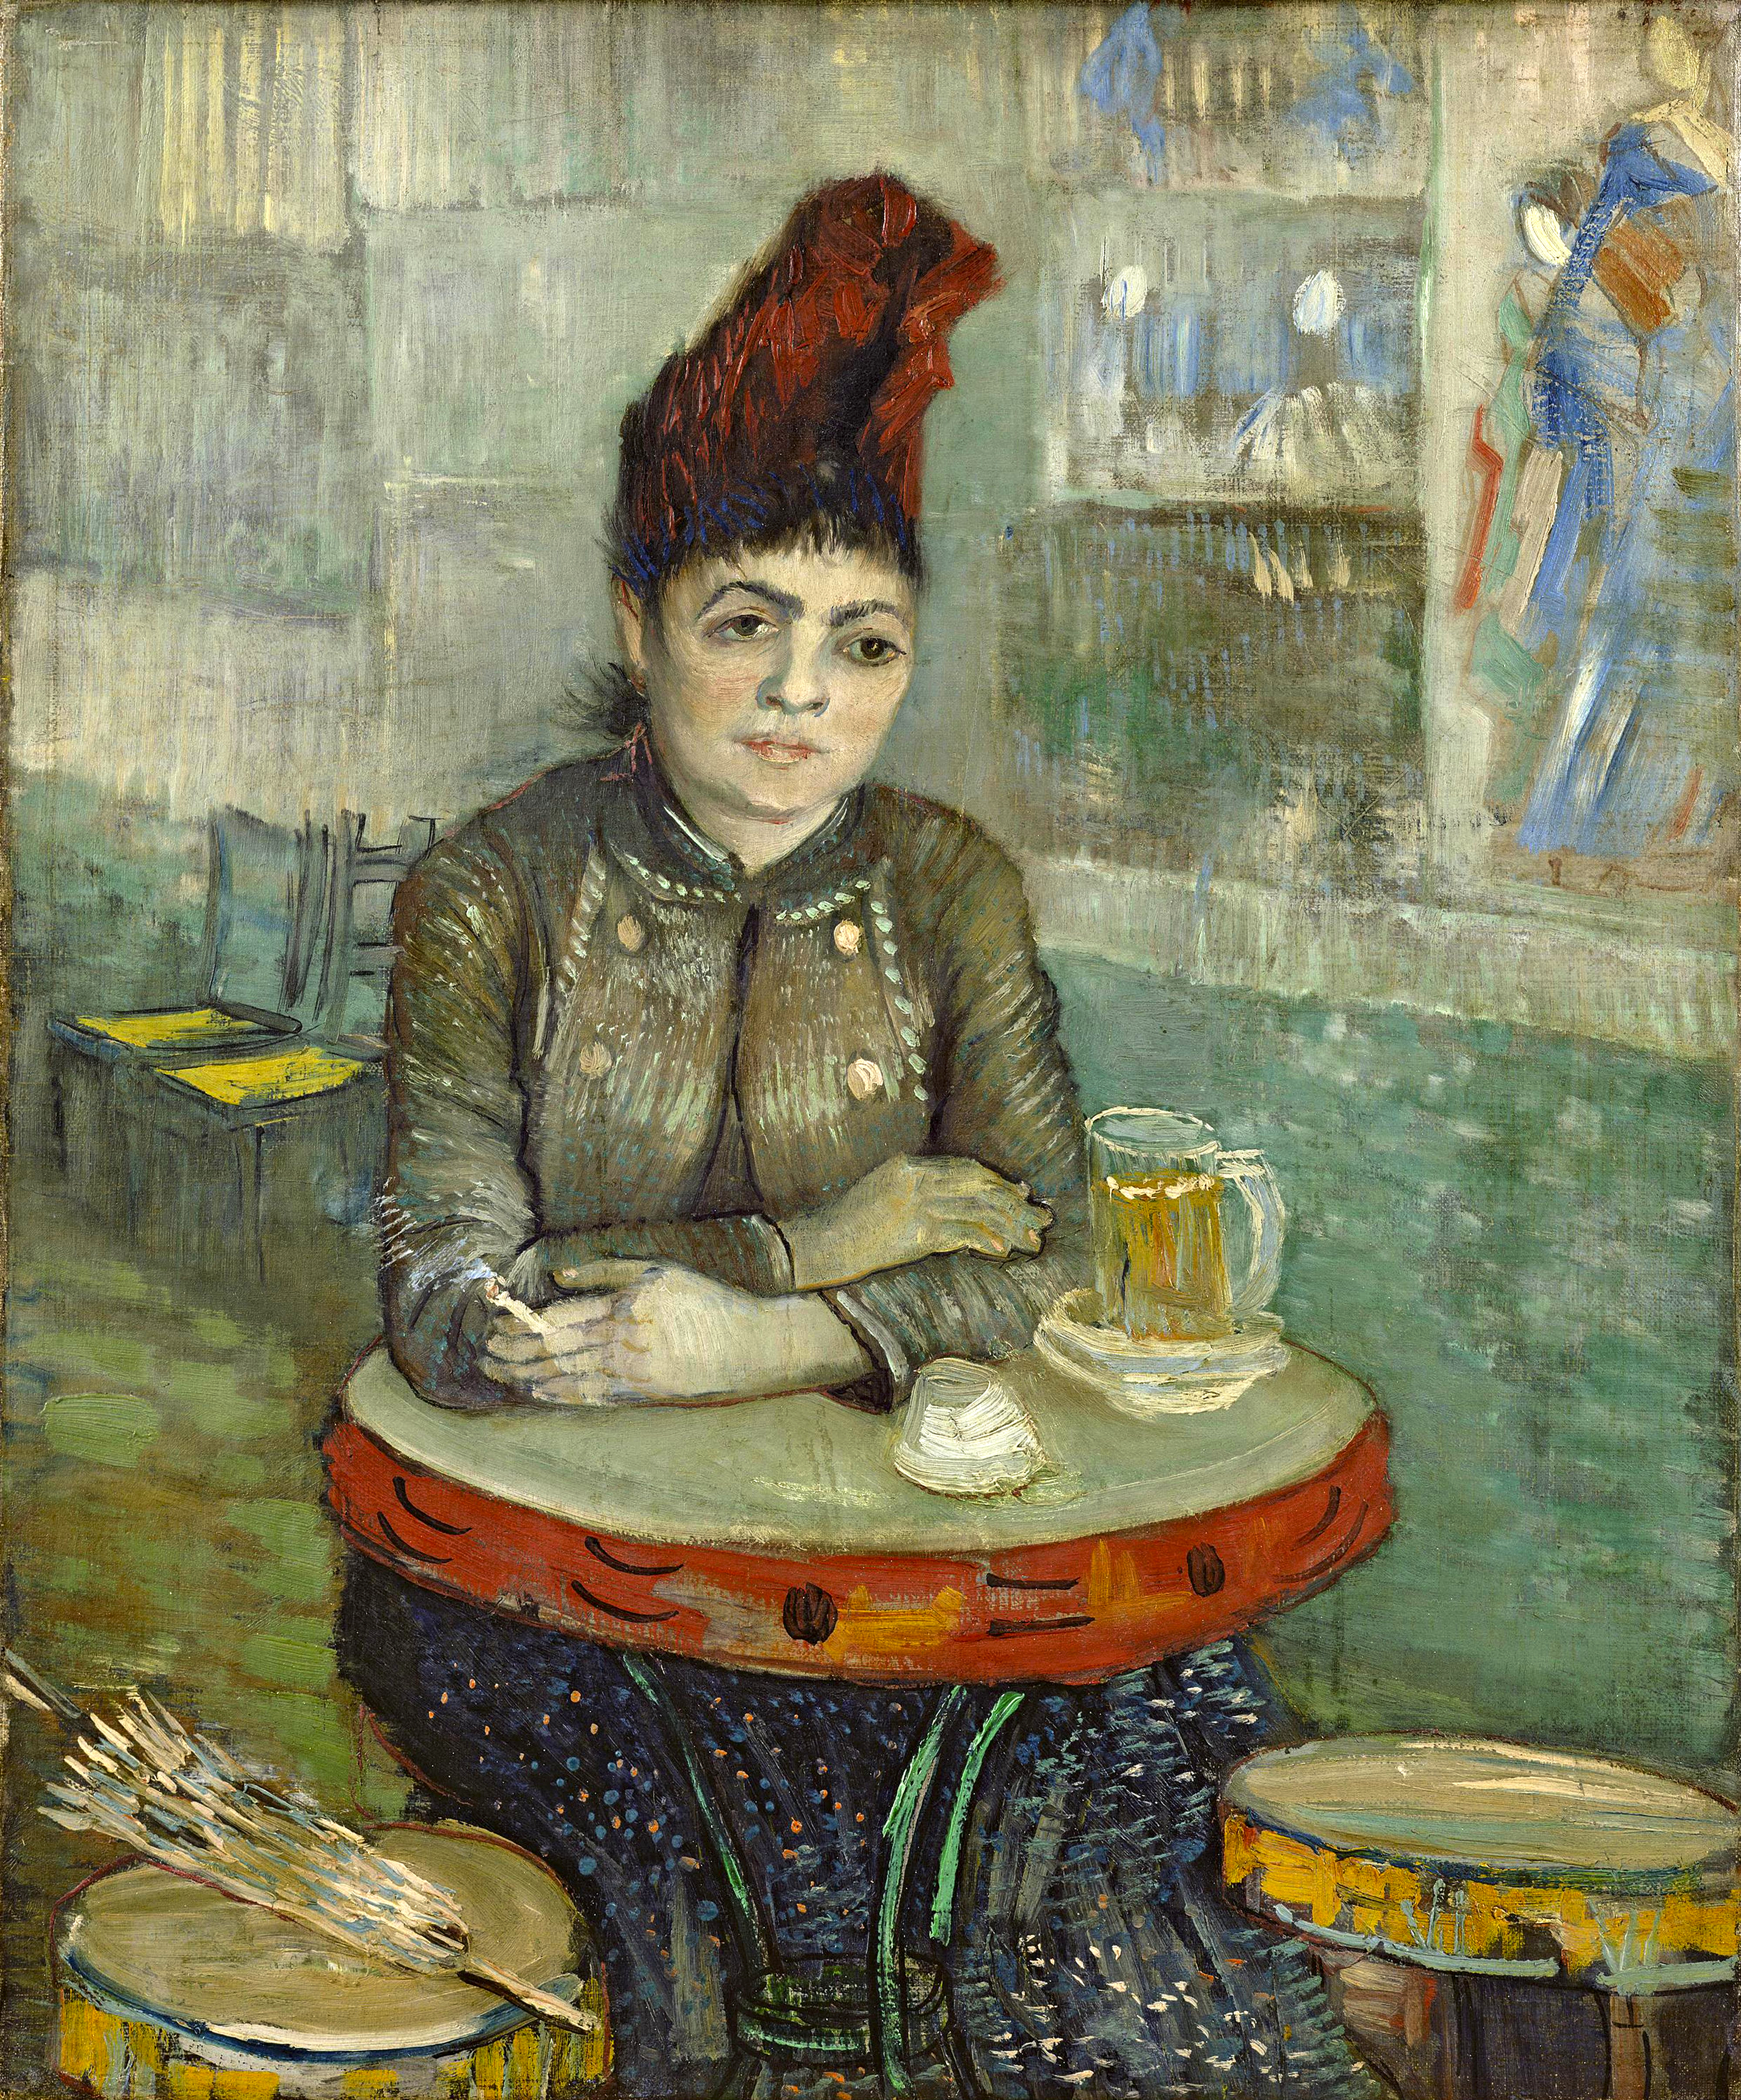 Vincent van Gogh - In the café - Agostina Segatori in Le Tambourin - Google  Art 10b1ad6a0b0f